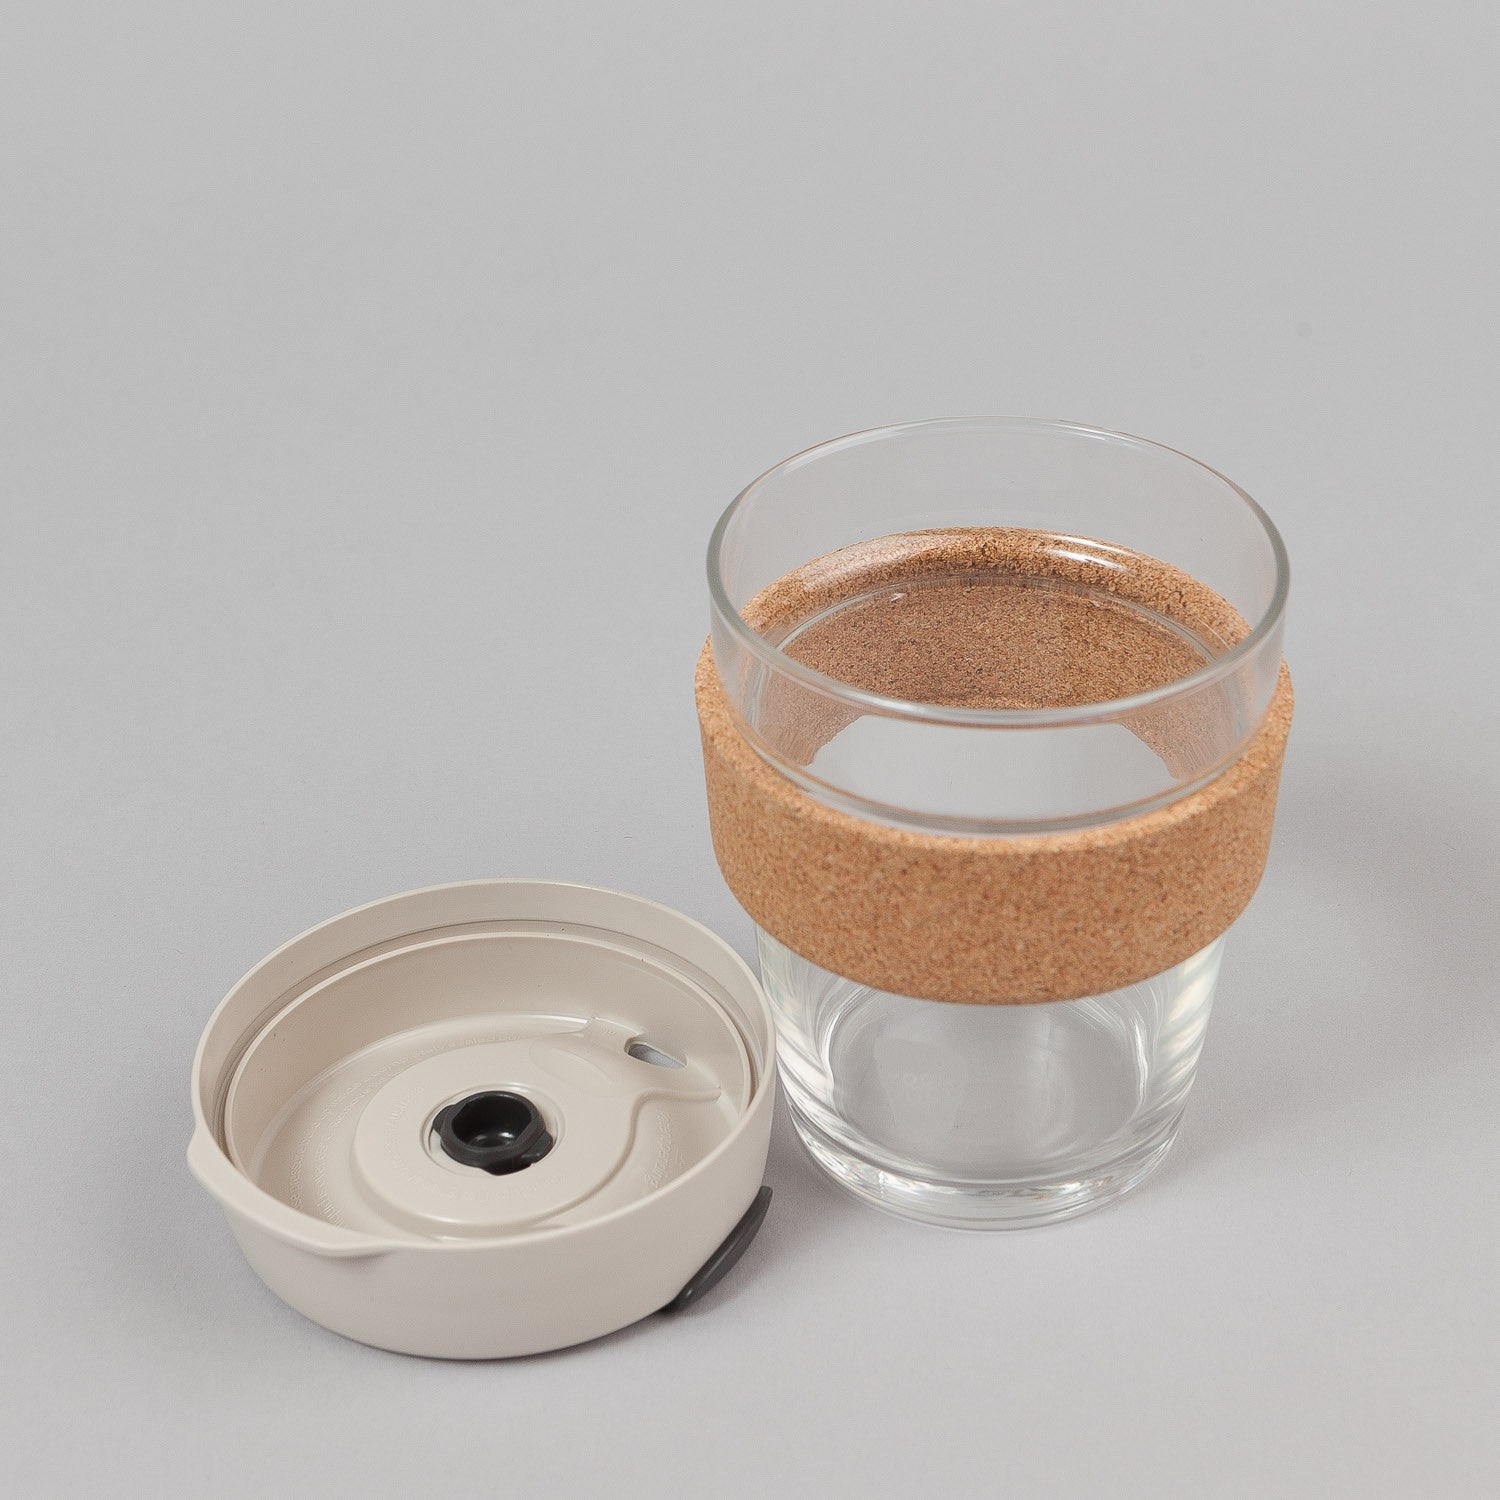 KeepCup Filter 12oz Medium Glass Coffee Cup - Latte / Cork